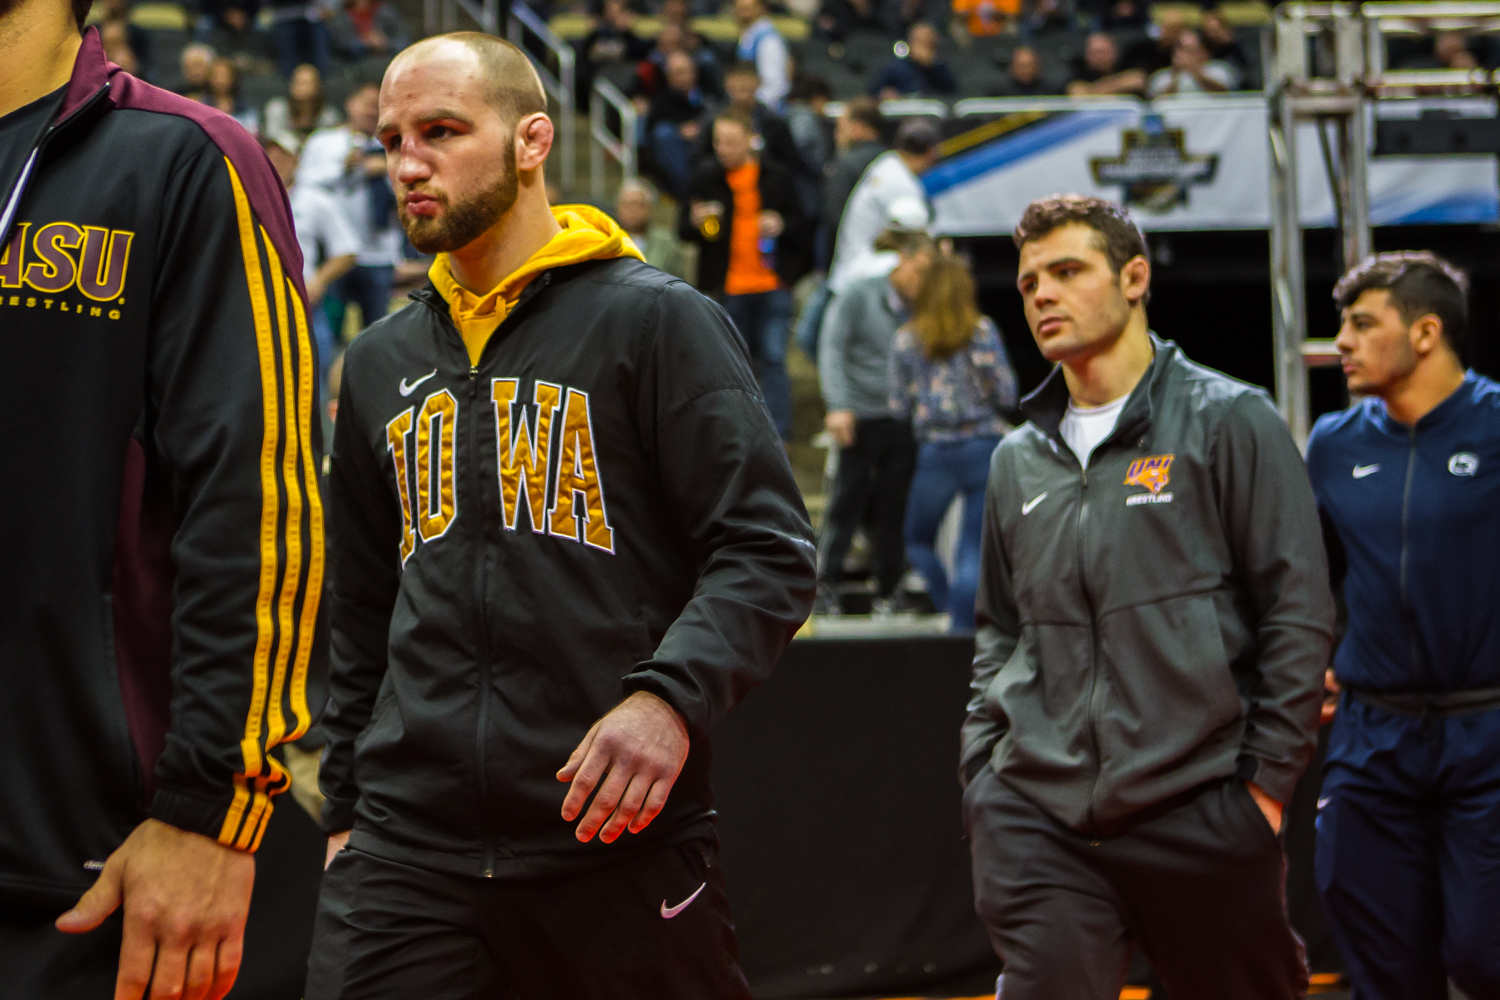 Iowa%27s+Alex+Marinelli+walks+across+the+show+floor+during+the+Parade+of+All+Americans+at+the+2019+NCAA+D1+Wrestling+Championships+at+PPG+Paints+Arena+in+Pittsburgh%2C+PA+on+Saturday%2C+March+23%2C+2019.+Six+of+Iowa%E2%80%99s+wrestlers+earned+the+distinction.